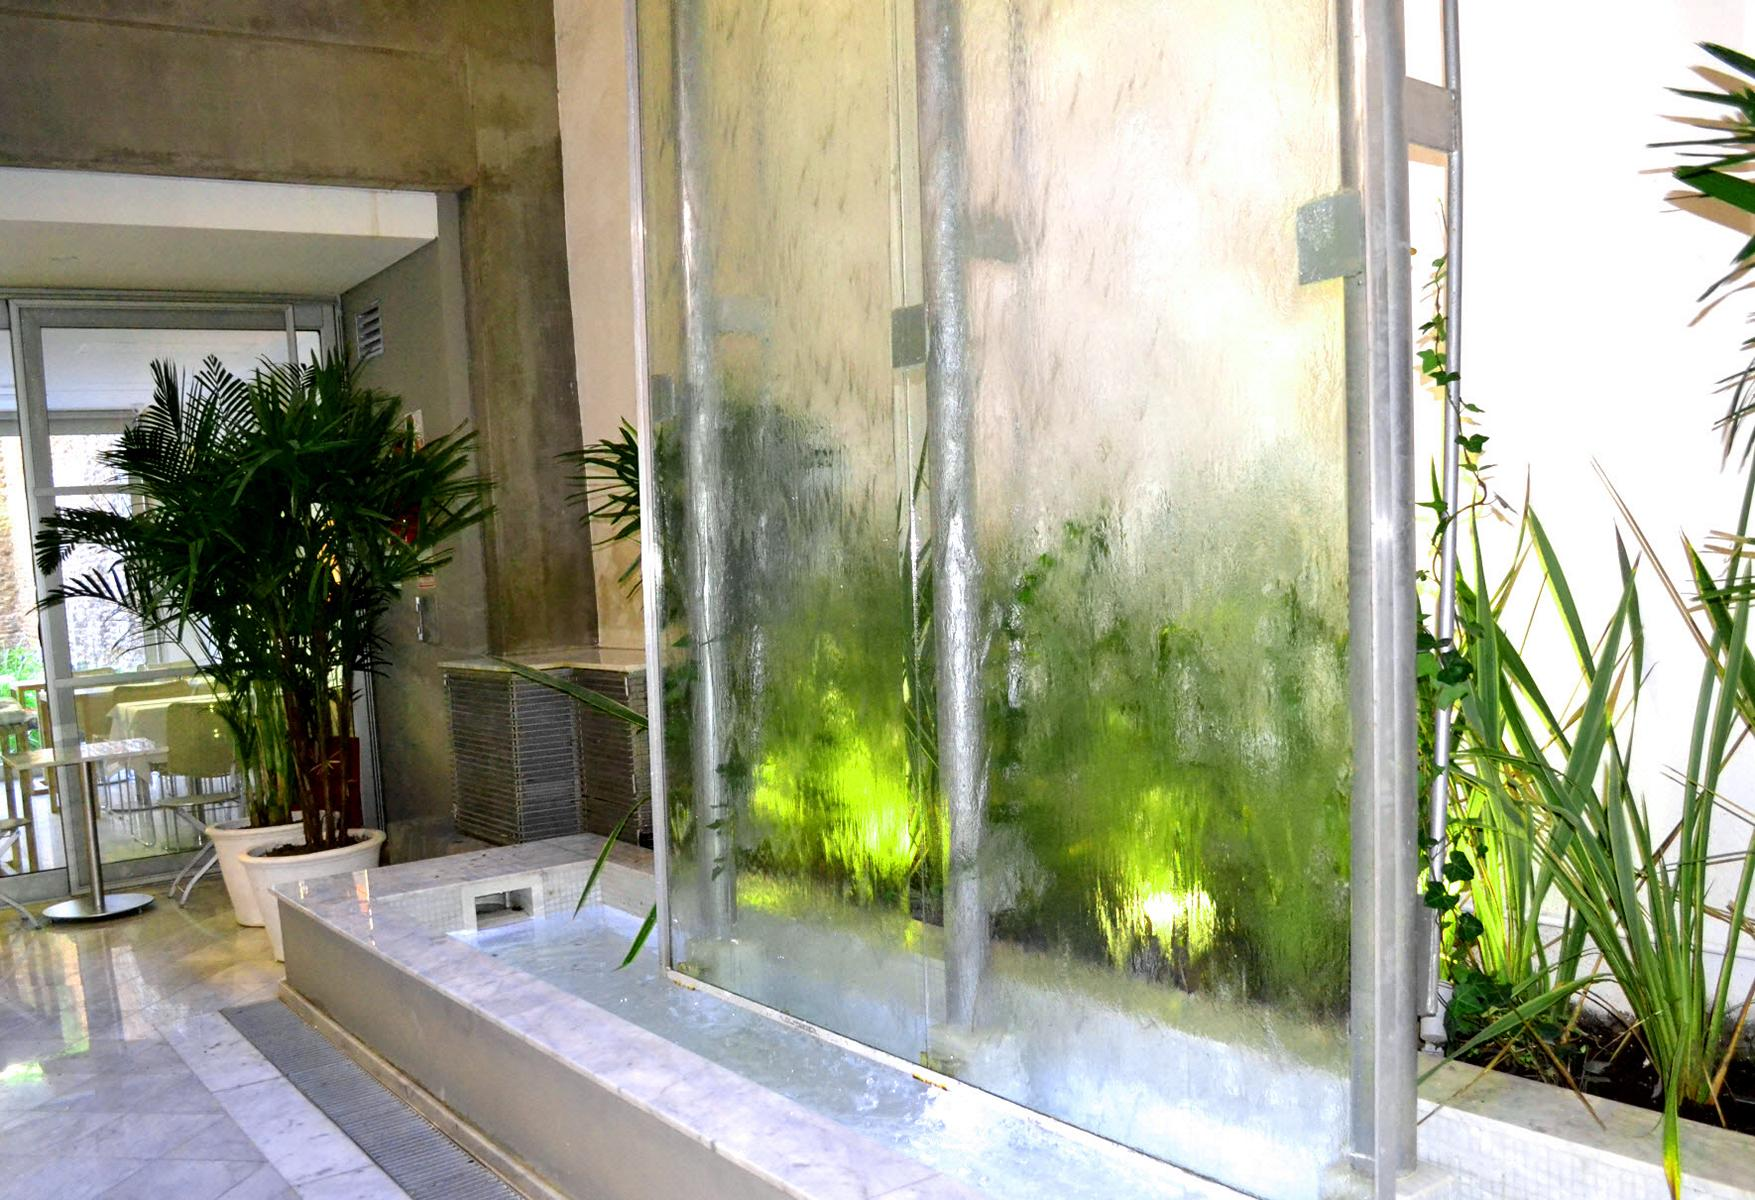 Waterfall in Palo Santo Hotel Buenos Aires Argentina